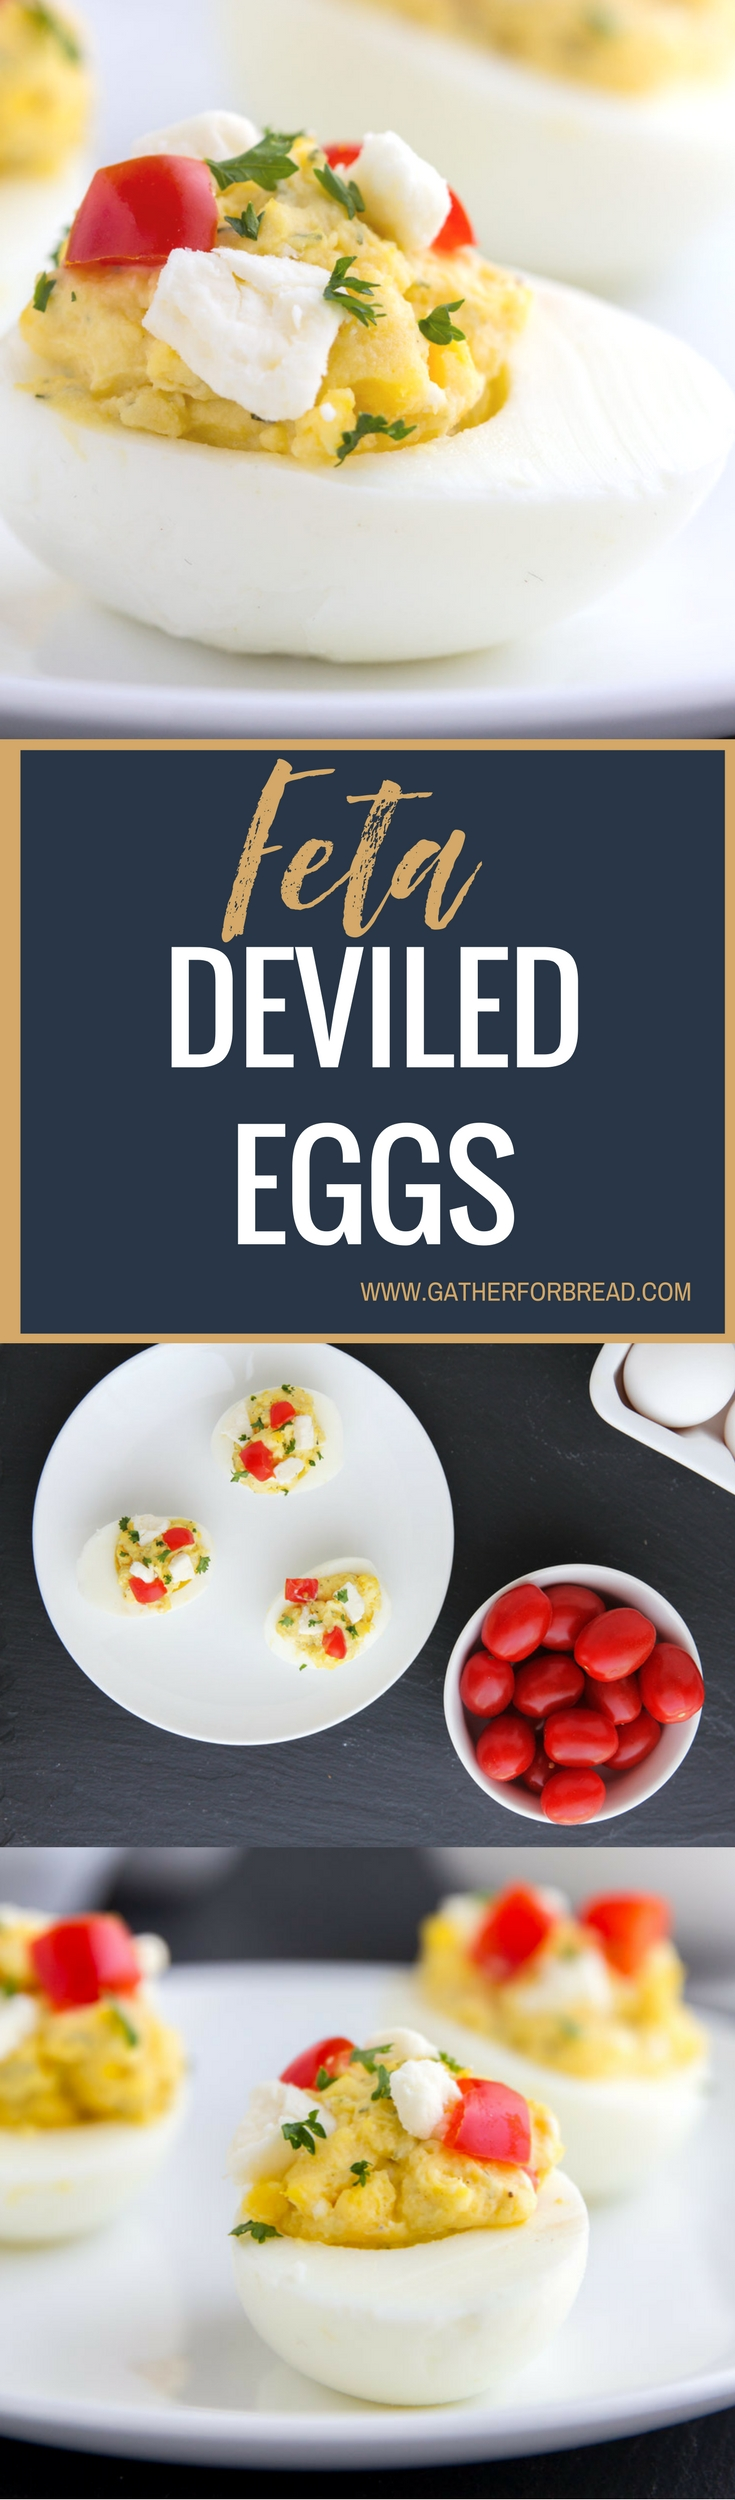 Feta Deviled Eggs - Healthier deviled eggs made with Greek yogurt, Feta cheese and dill for a savory appetizer that's ready in minutes. These Greek style eggs with herbs are delicious!